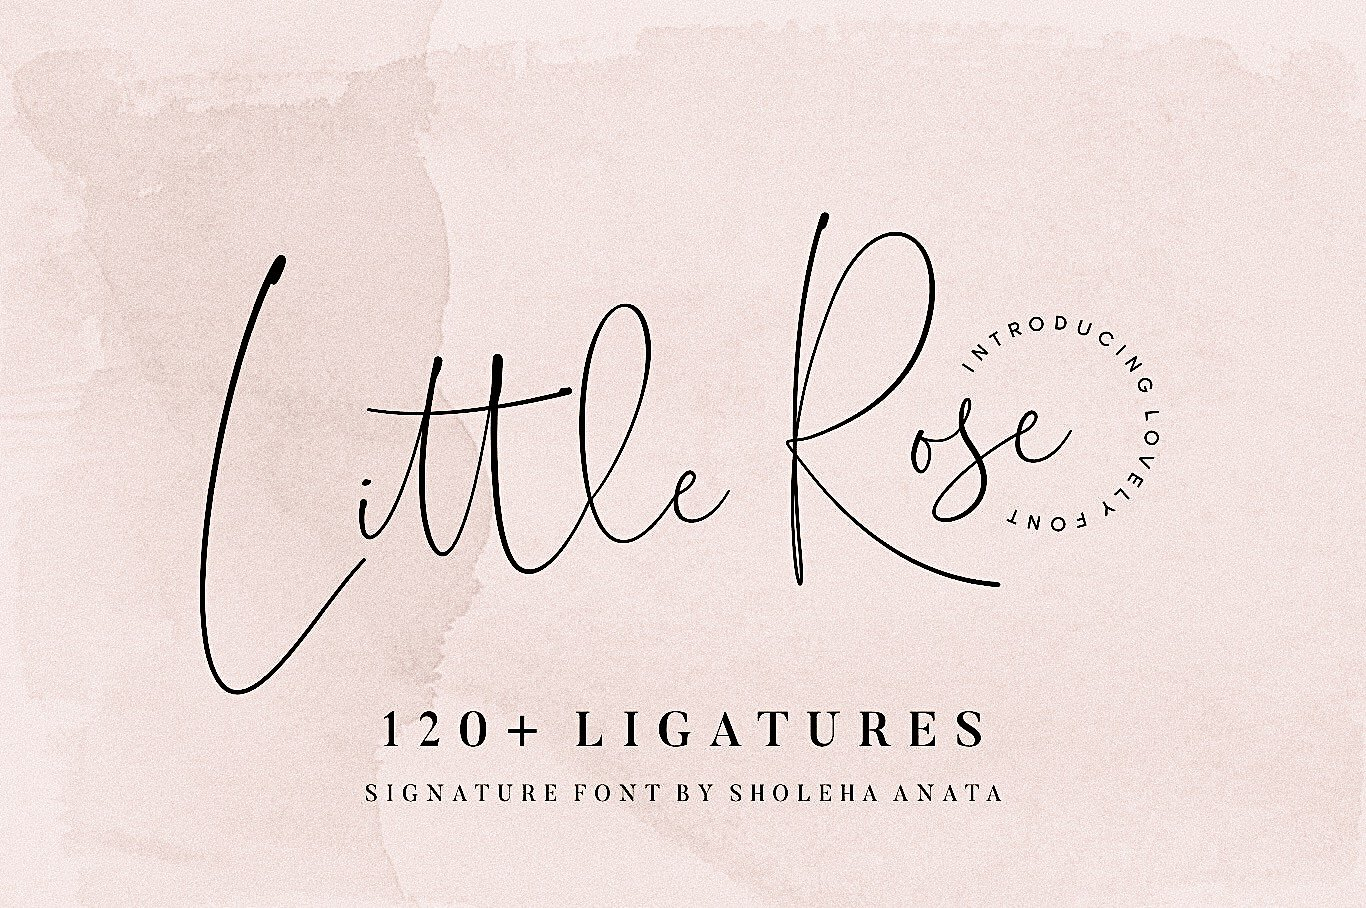 Little Rose Font Handwritten Fonts, Alphabet Fonts, Free Fonts, Script Fonts, Modern Fonts, Cursive Fonts, Design Fonts, Rustic Fonts, Calligraphy Fonts, Simple Fonts, Typography, Serif Fonts, Elegant Fonts, Professional Fonts, Beautiful Fonts https://avemateiu.com/fonts/ *affiliate